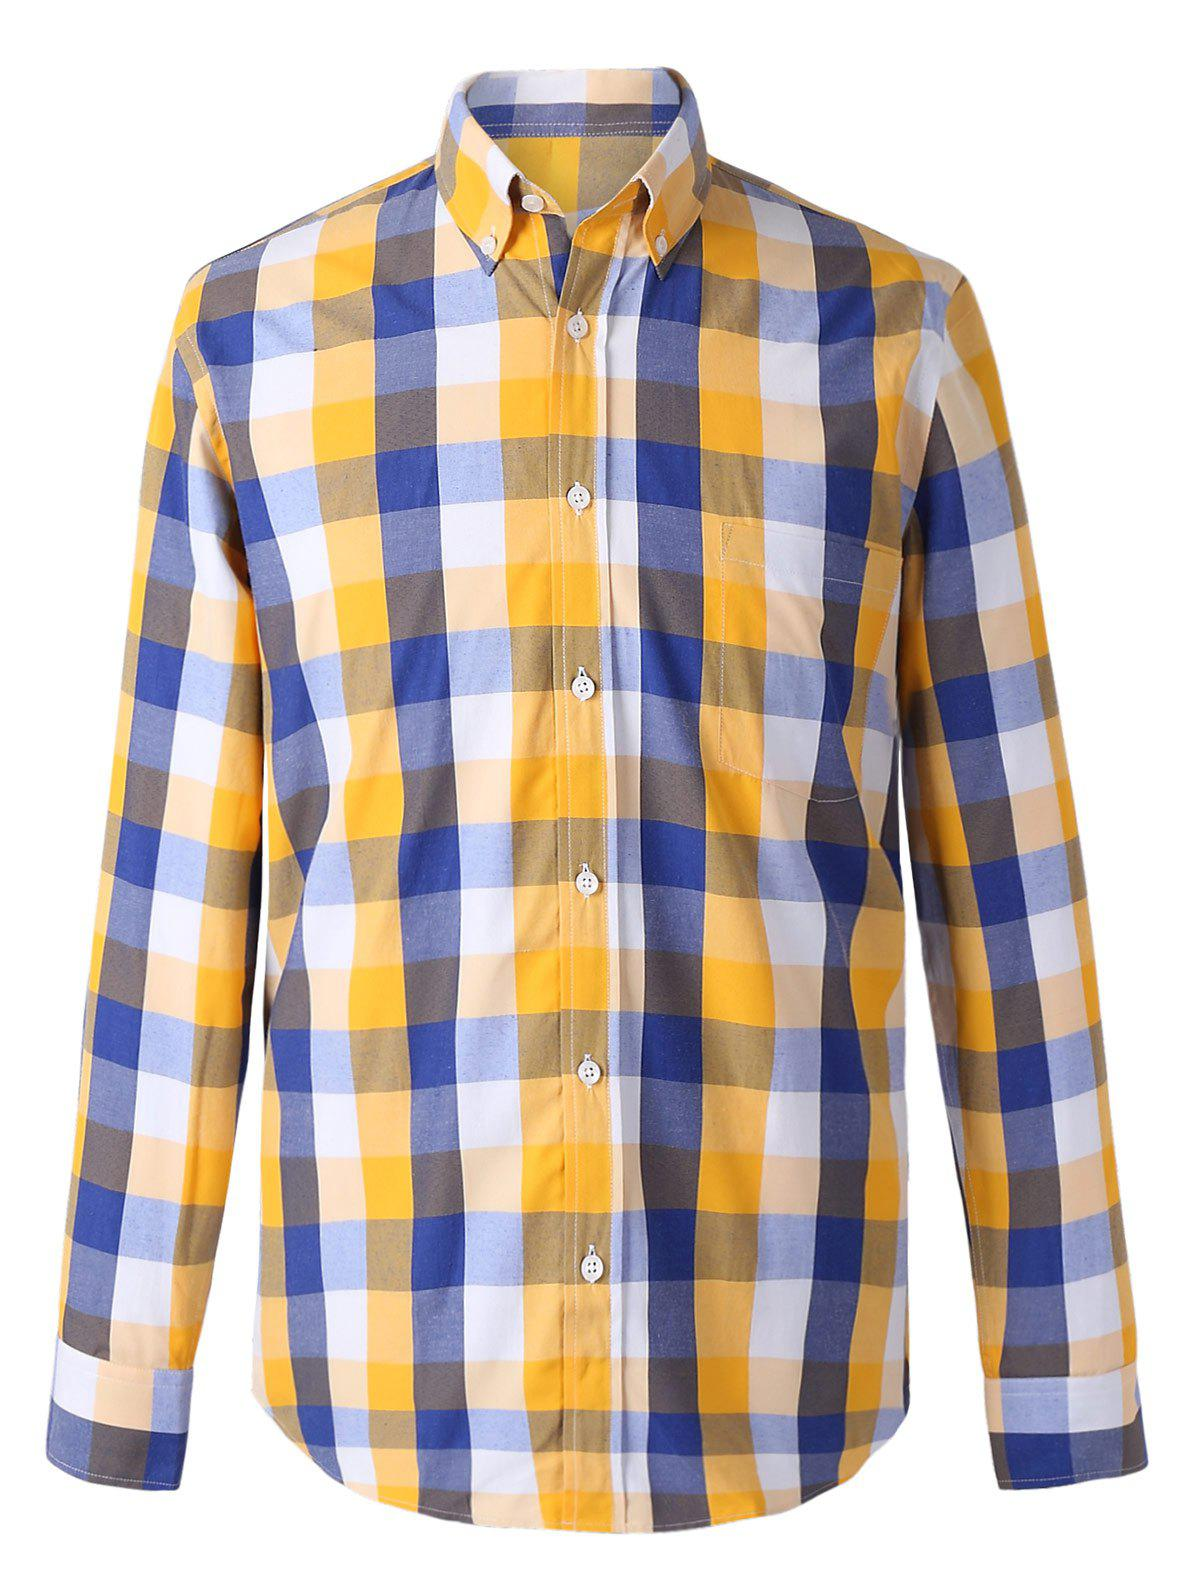 Turn-Down Collar Long Sleeves Classic Plaid Shirt For Men - BLUE/YELLOW 2XL